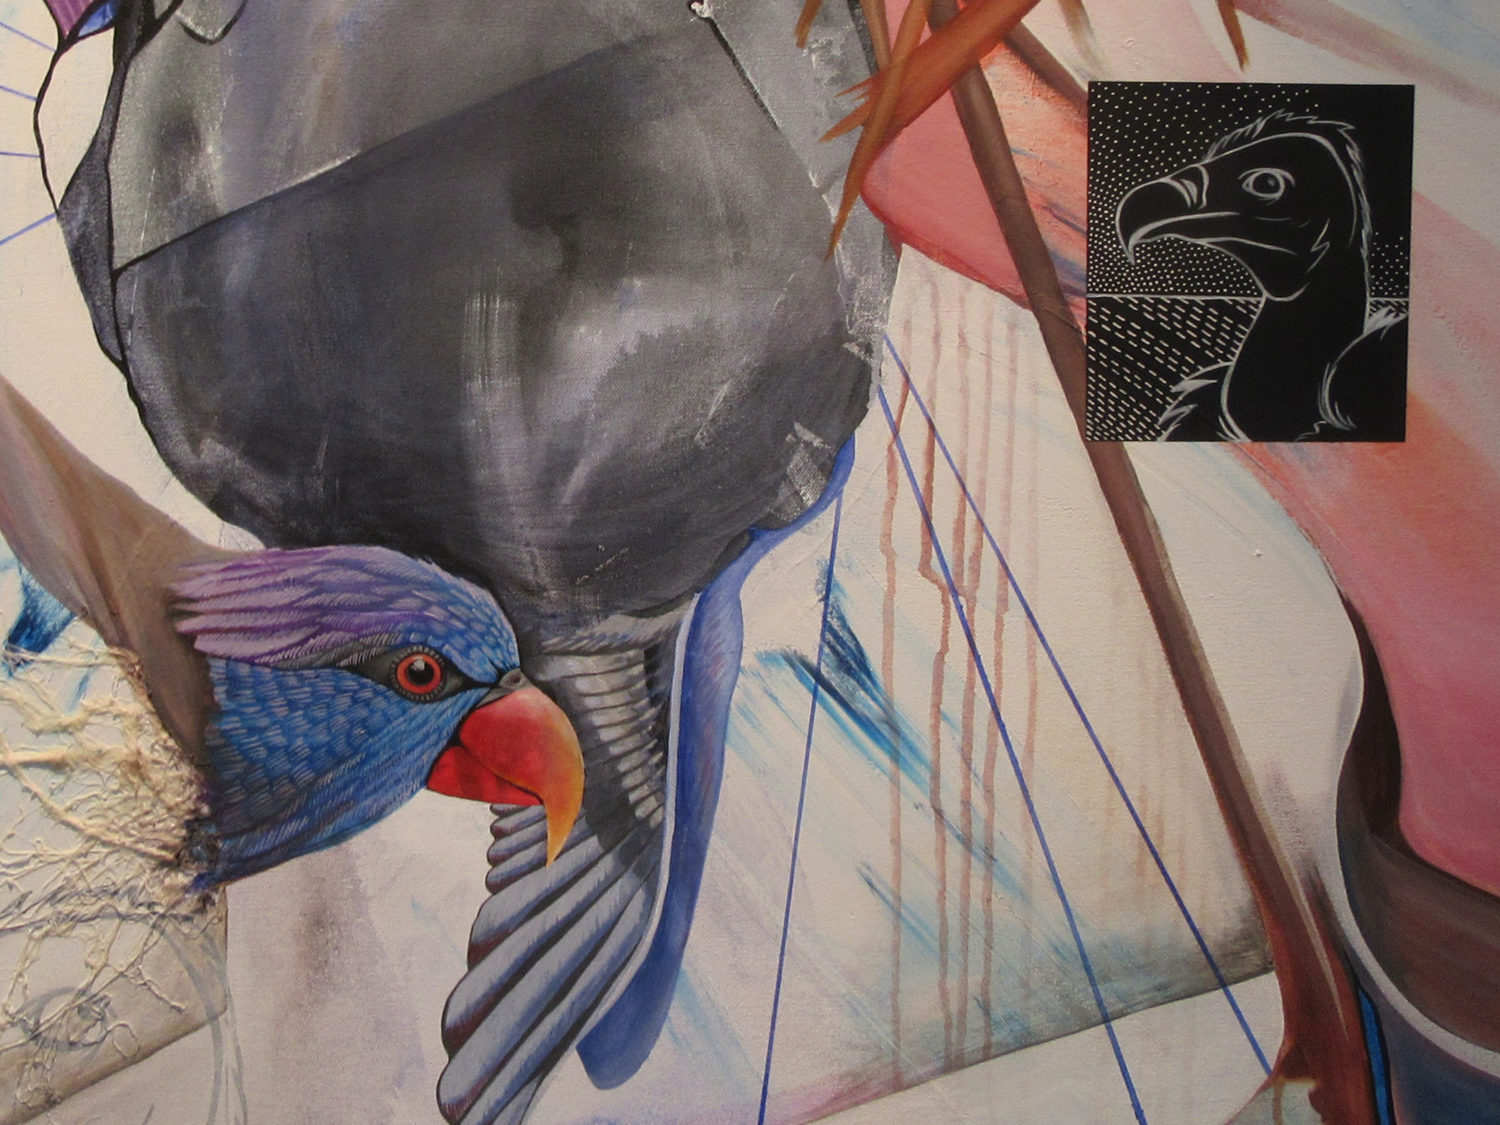 Art by Gabriel Lovejoy from Positional Ambivalence showing parrot and vulture